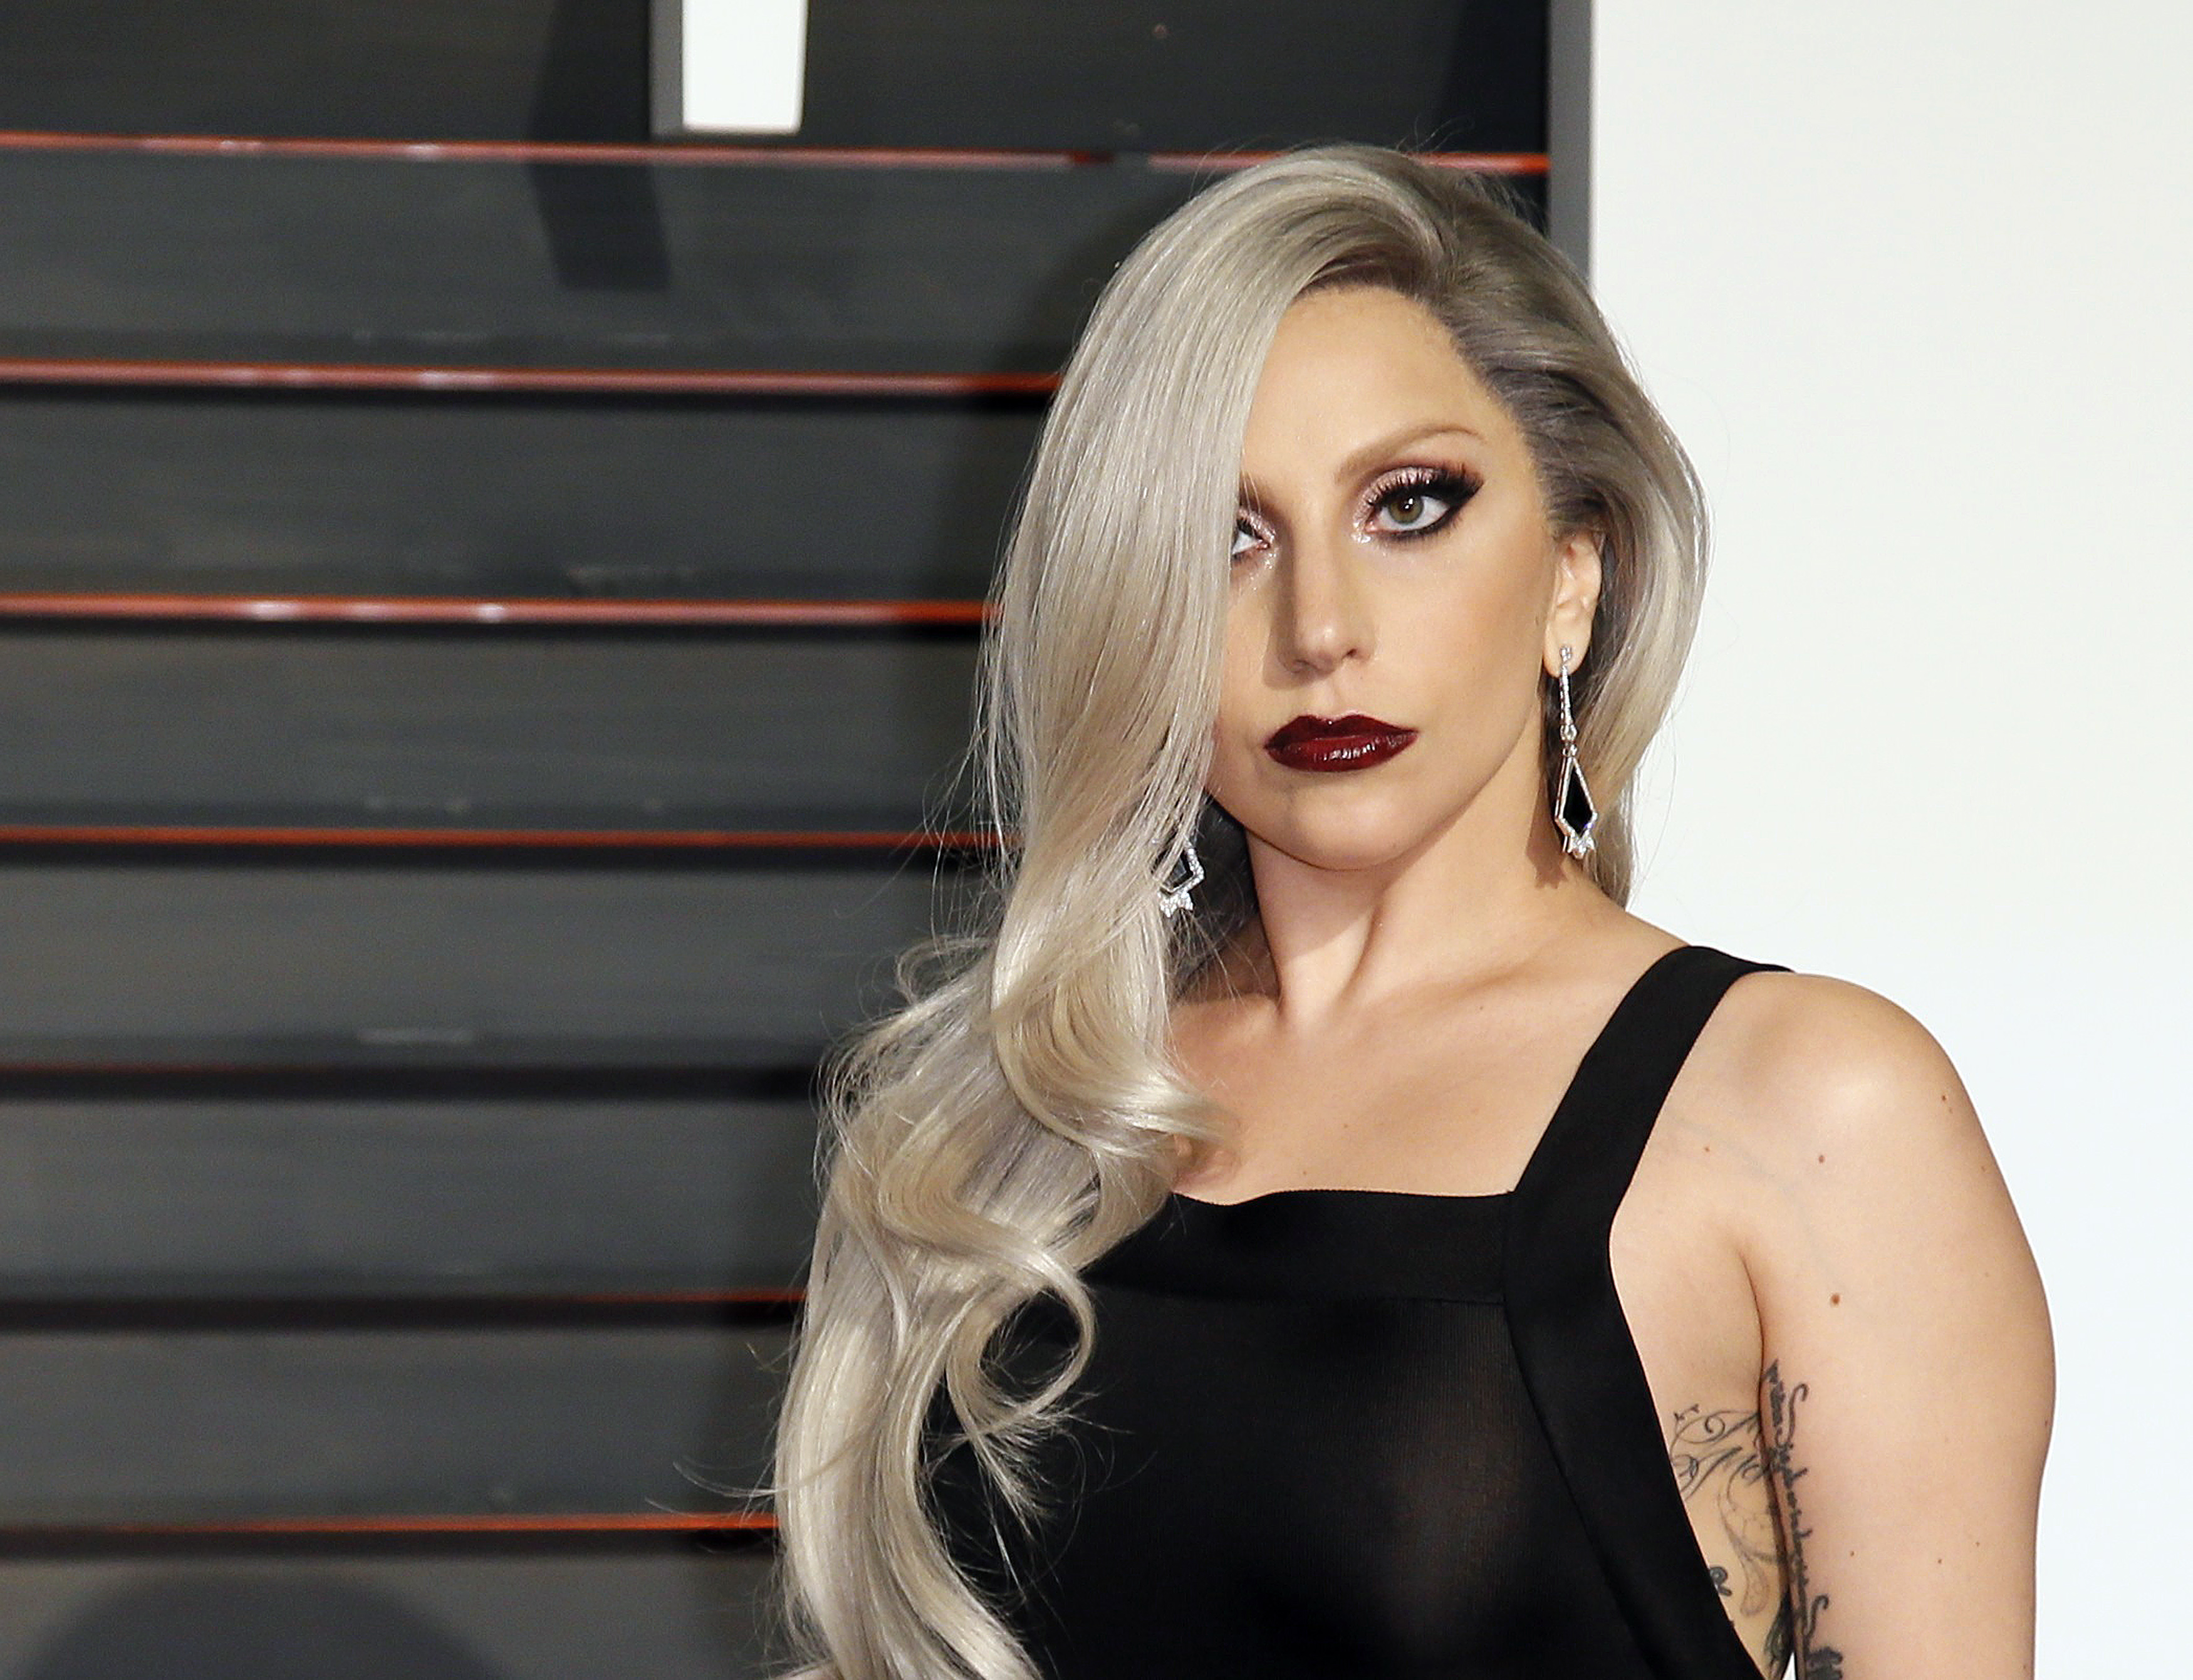 Lady Gaga: Lady Gaga Drops Hints About New Album After Concluding